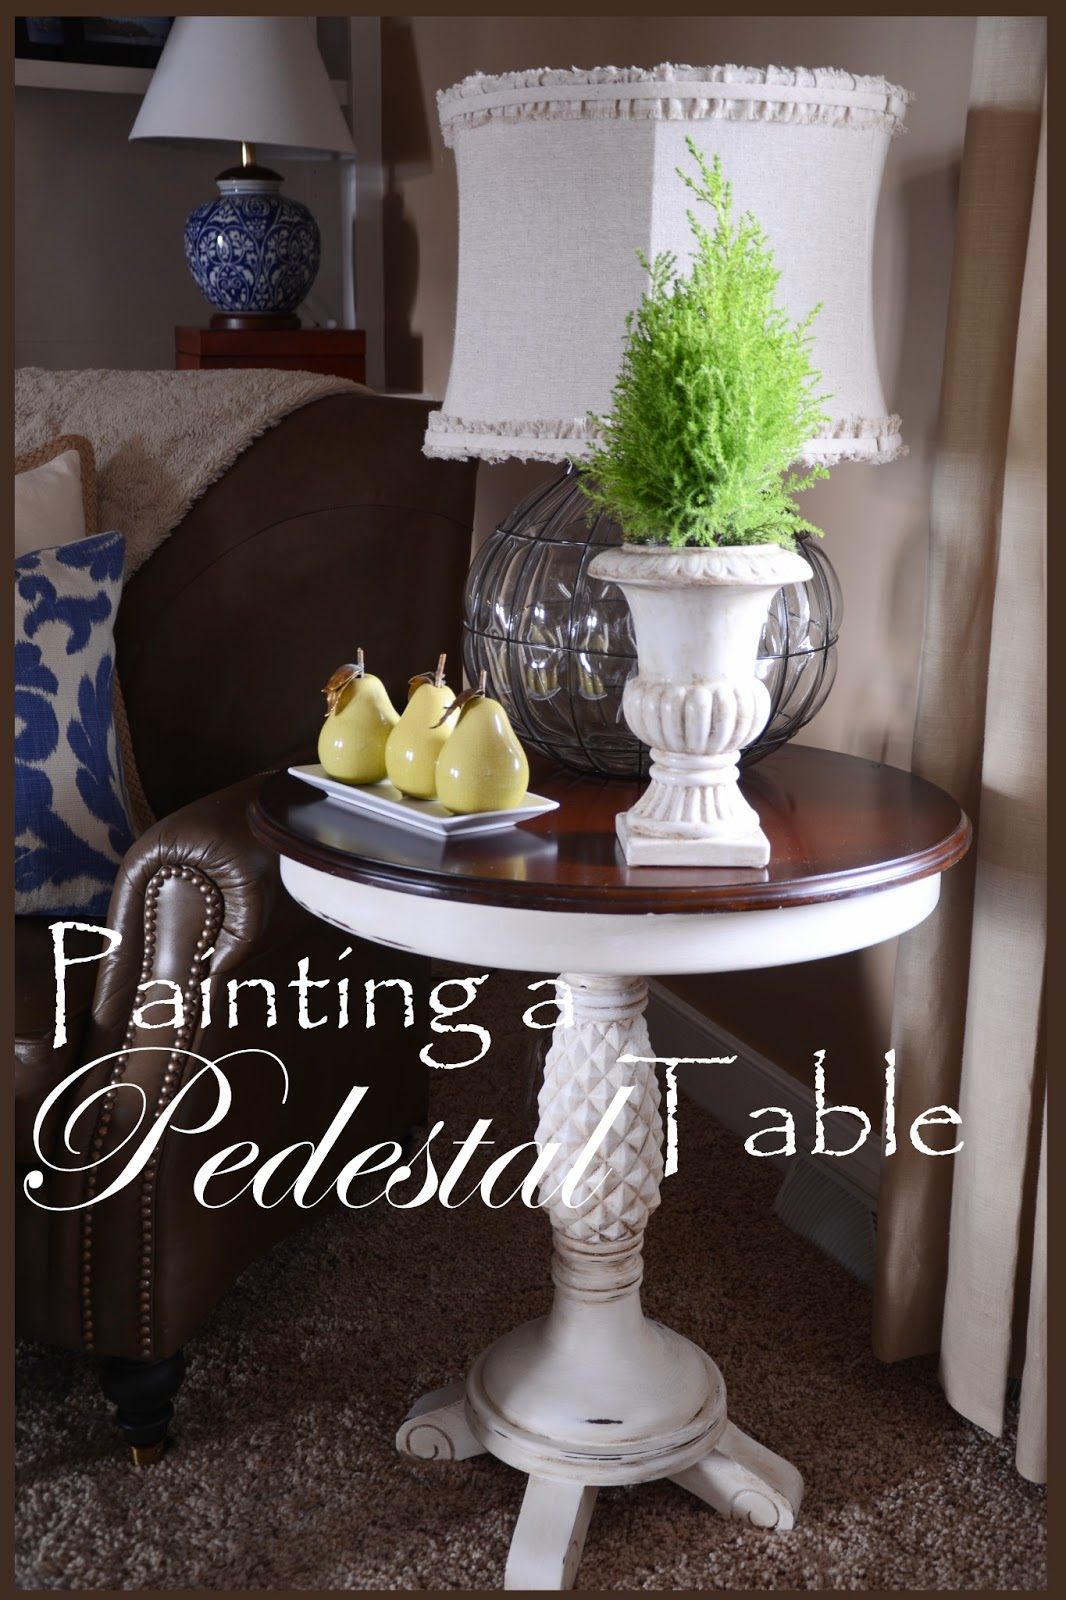 PAINTING A PEDESTAL TABLE